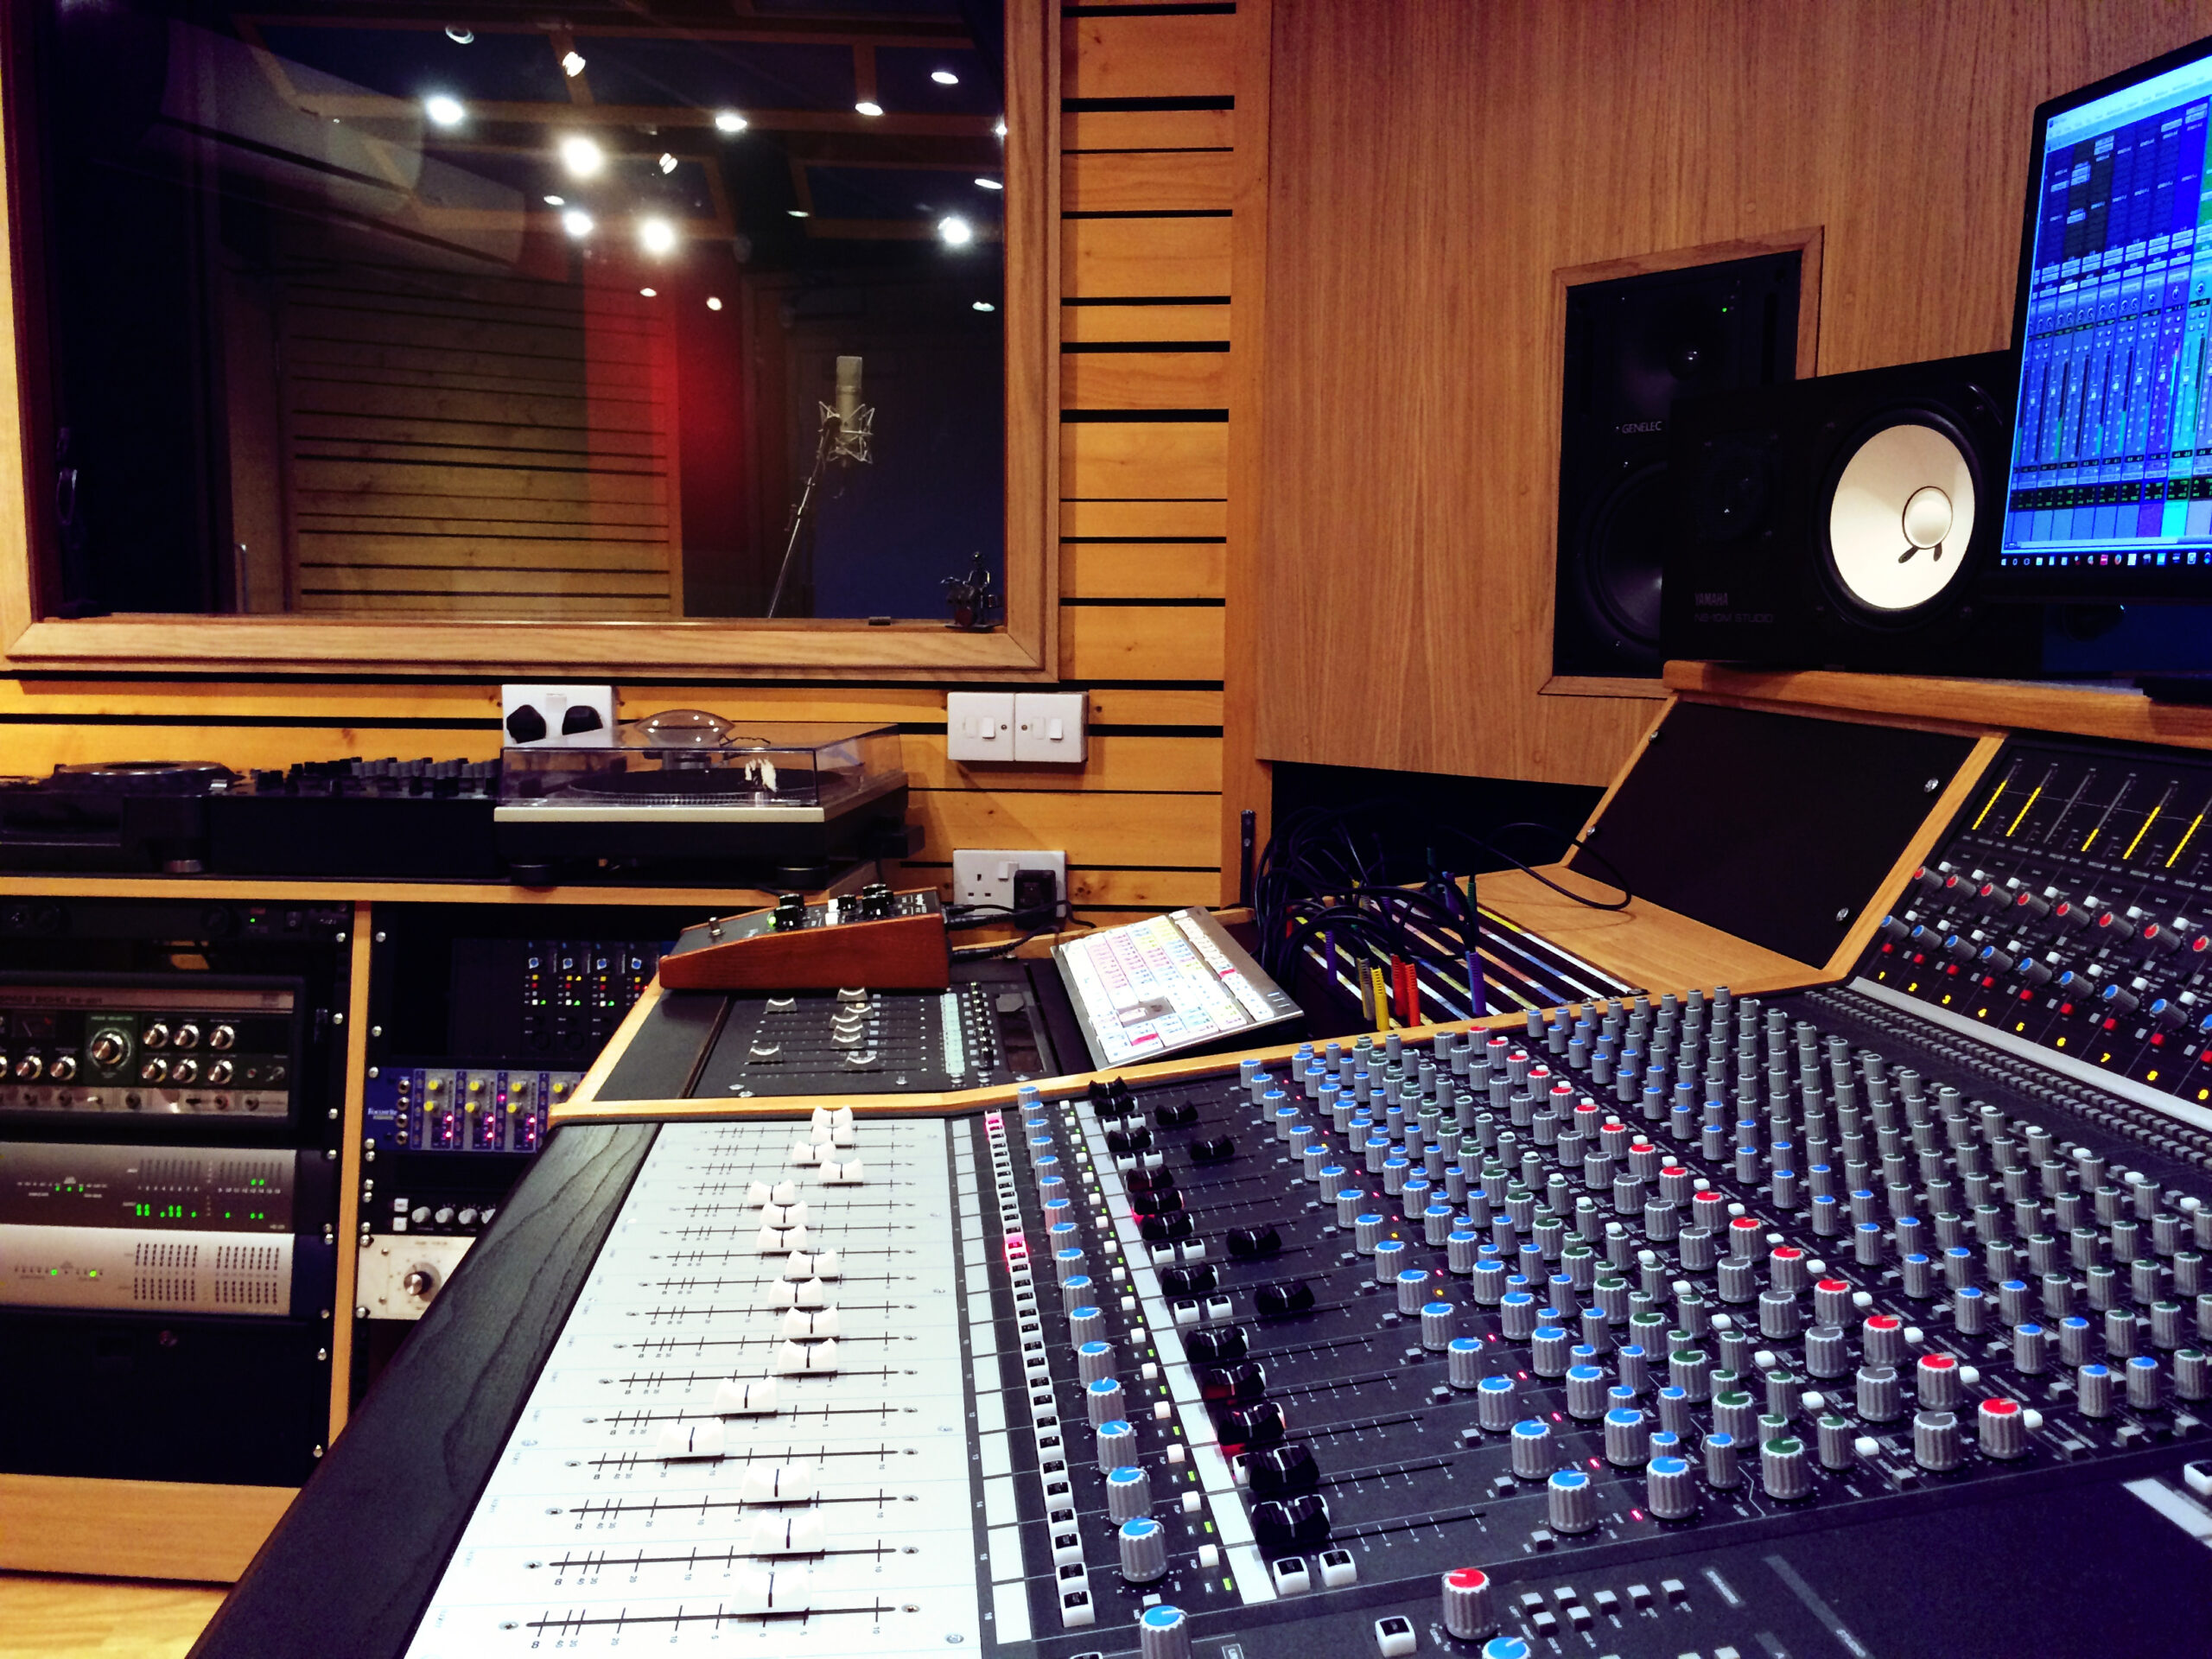 Slipway-Studio_Audient-ASP4816_desk_03